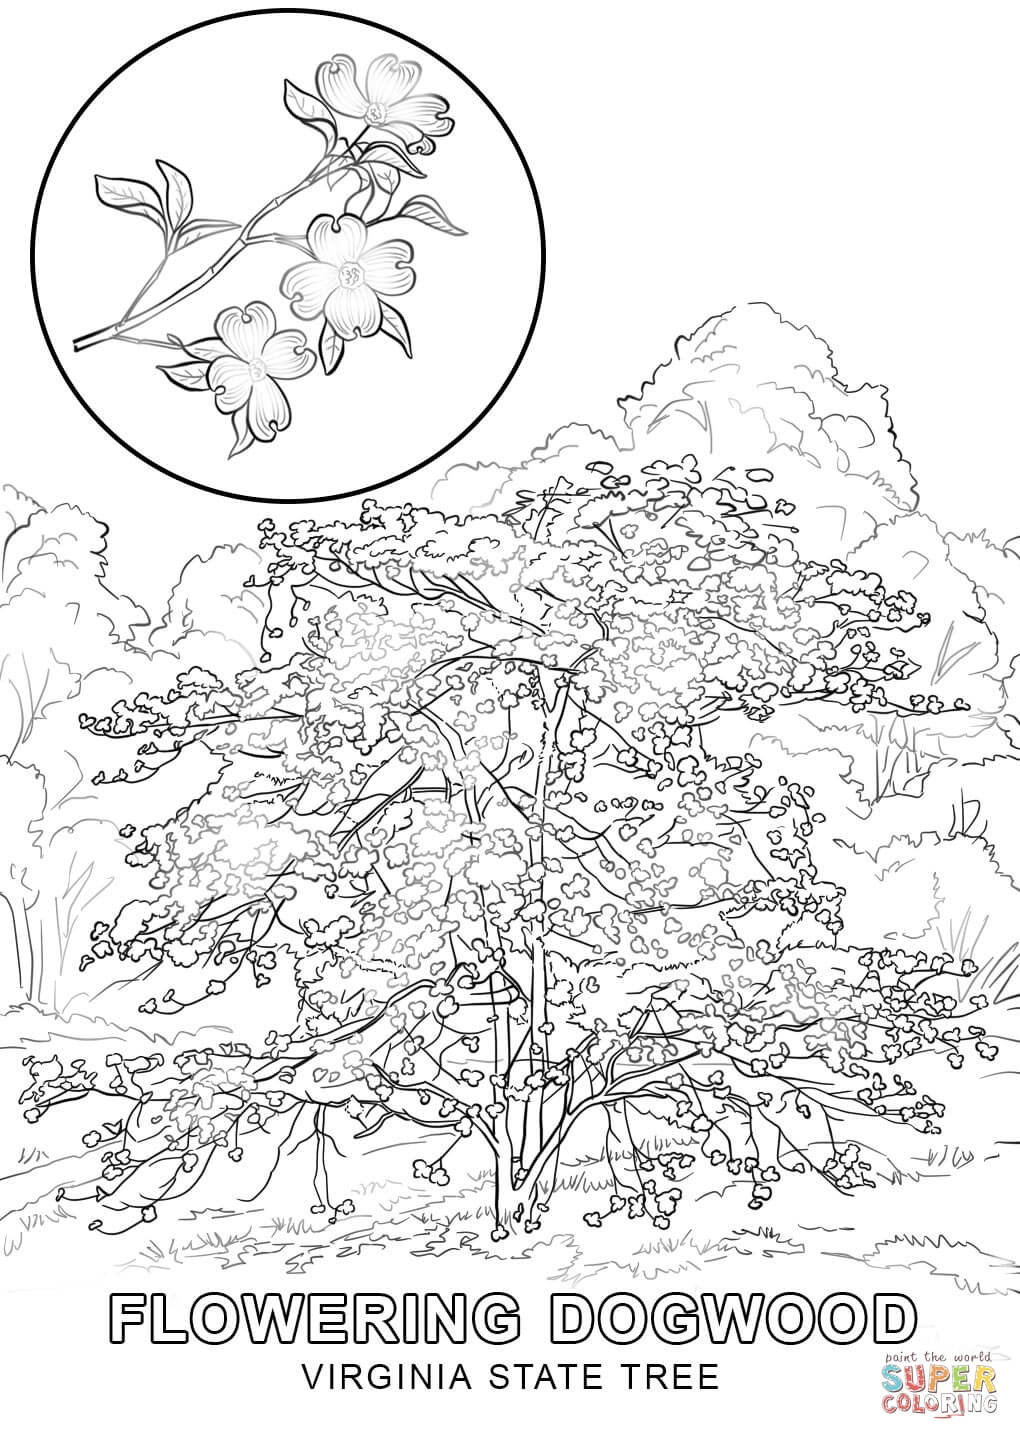 virginia state symbols coloring pages usa and state flag coloring printouts enchantedlearningcom pages symbols coloring state virginia